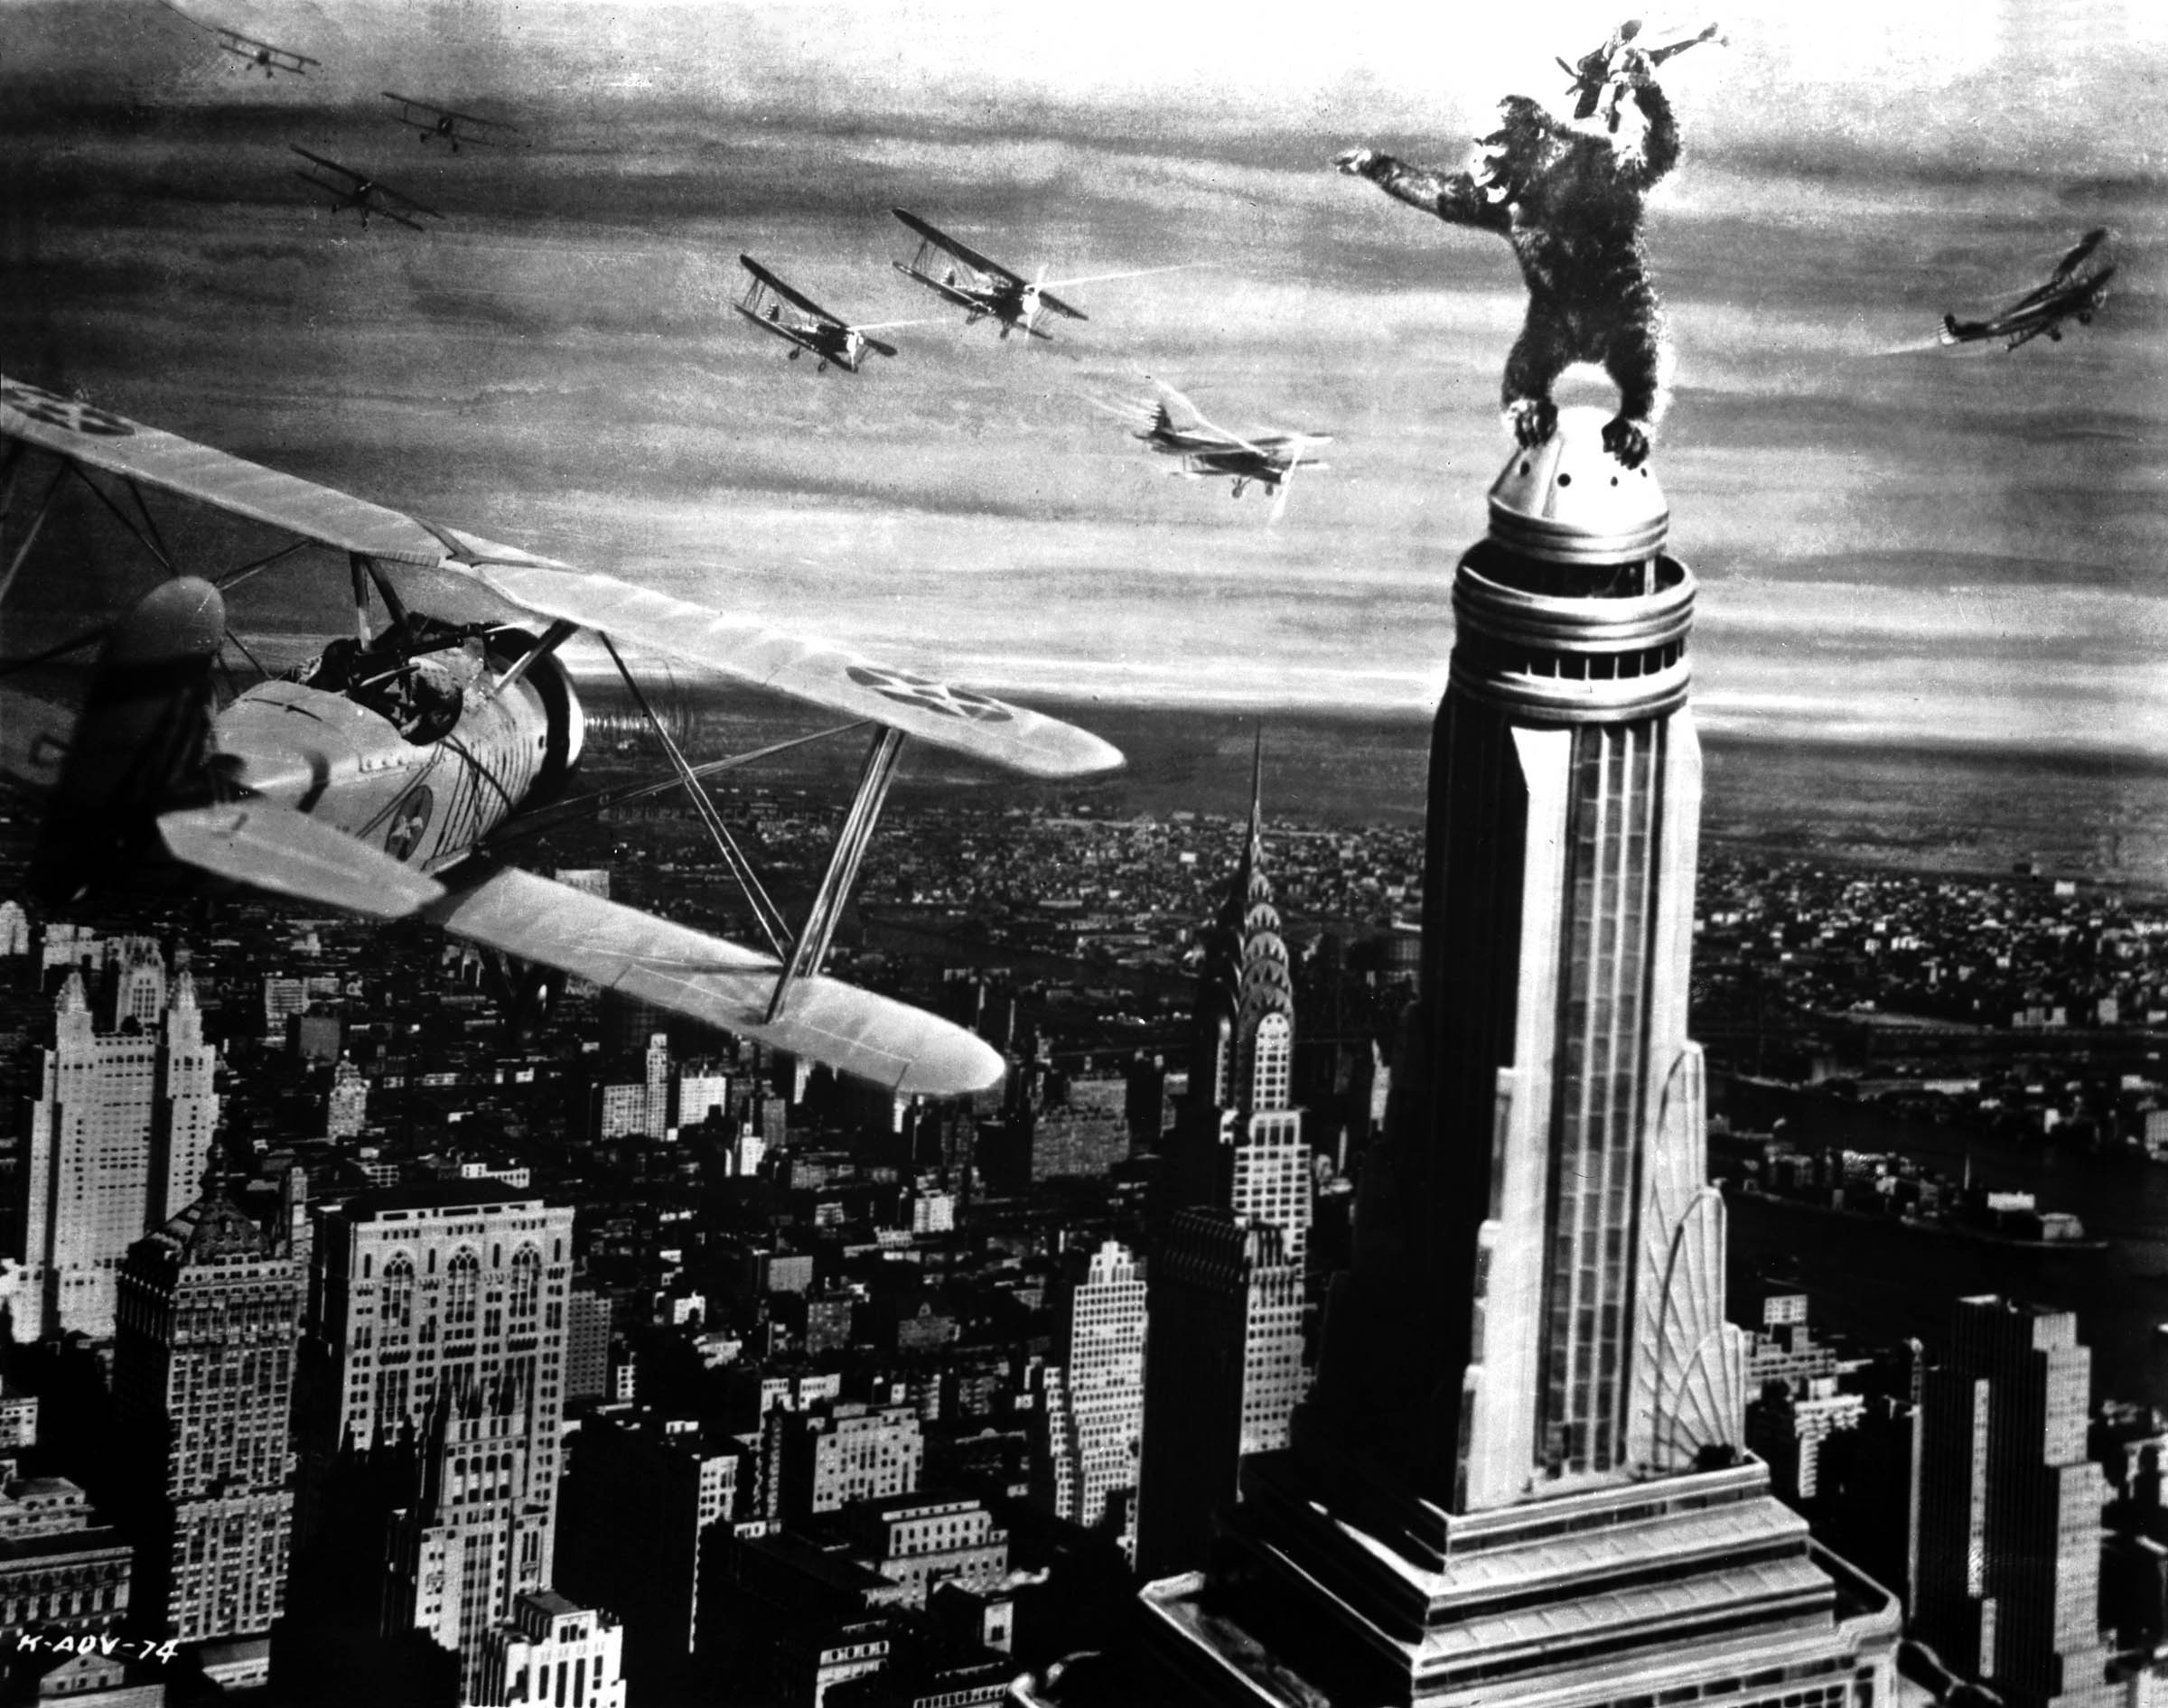 plane crash disaster movies with King Kong 1933 Photo on Watch furthermore Syria From Revolution To All Out War 15159 as well  additionally Dramatic Moment Two Planes Collide Runway Barcelona Airport Caught Video together with The Top 5 Worst Train Crashes Ever.